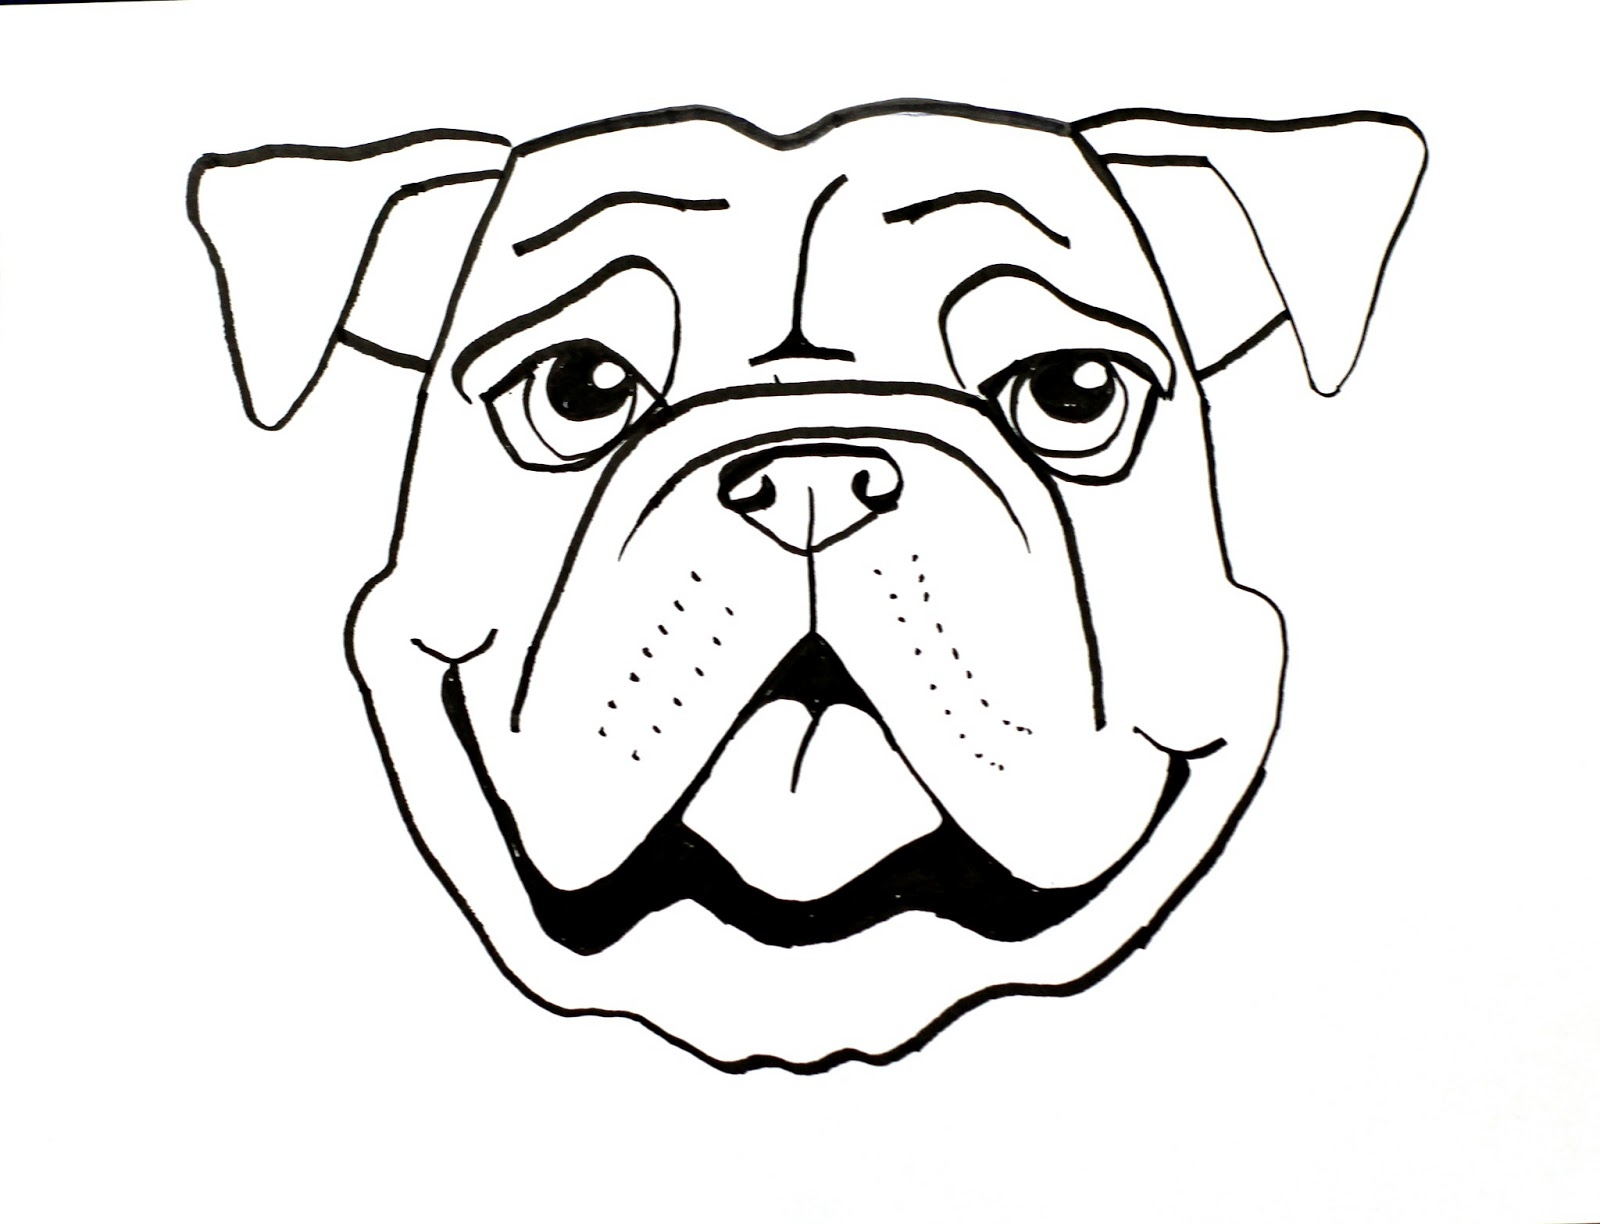 1600x1224 Drawing Of Faces Of Animals How To Draw Cartoon Animal Faces